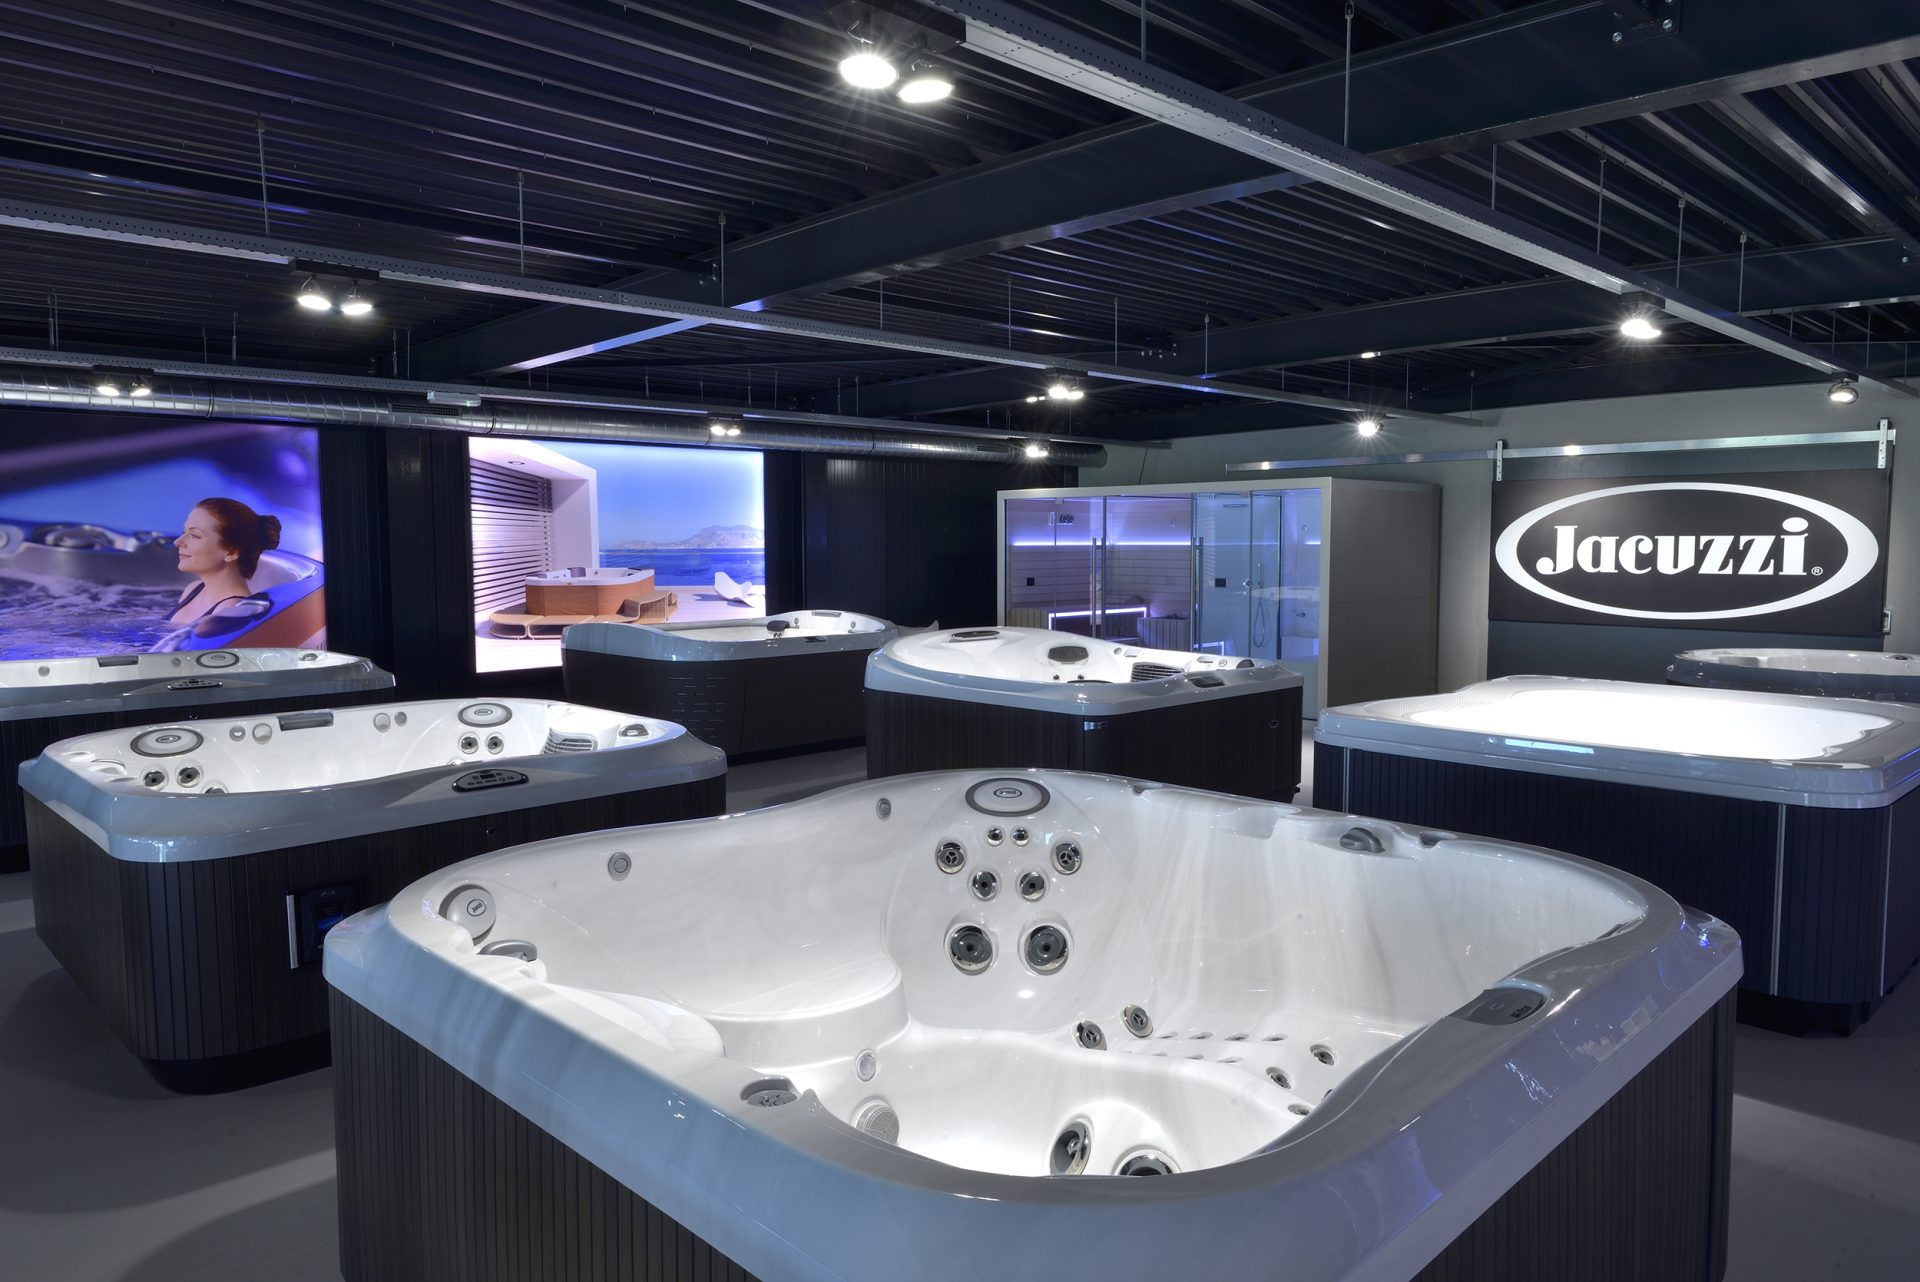 Jacuzzi® spa showroom